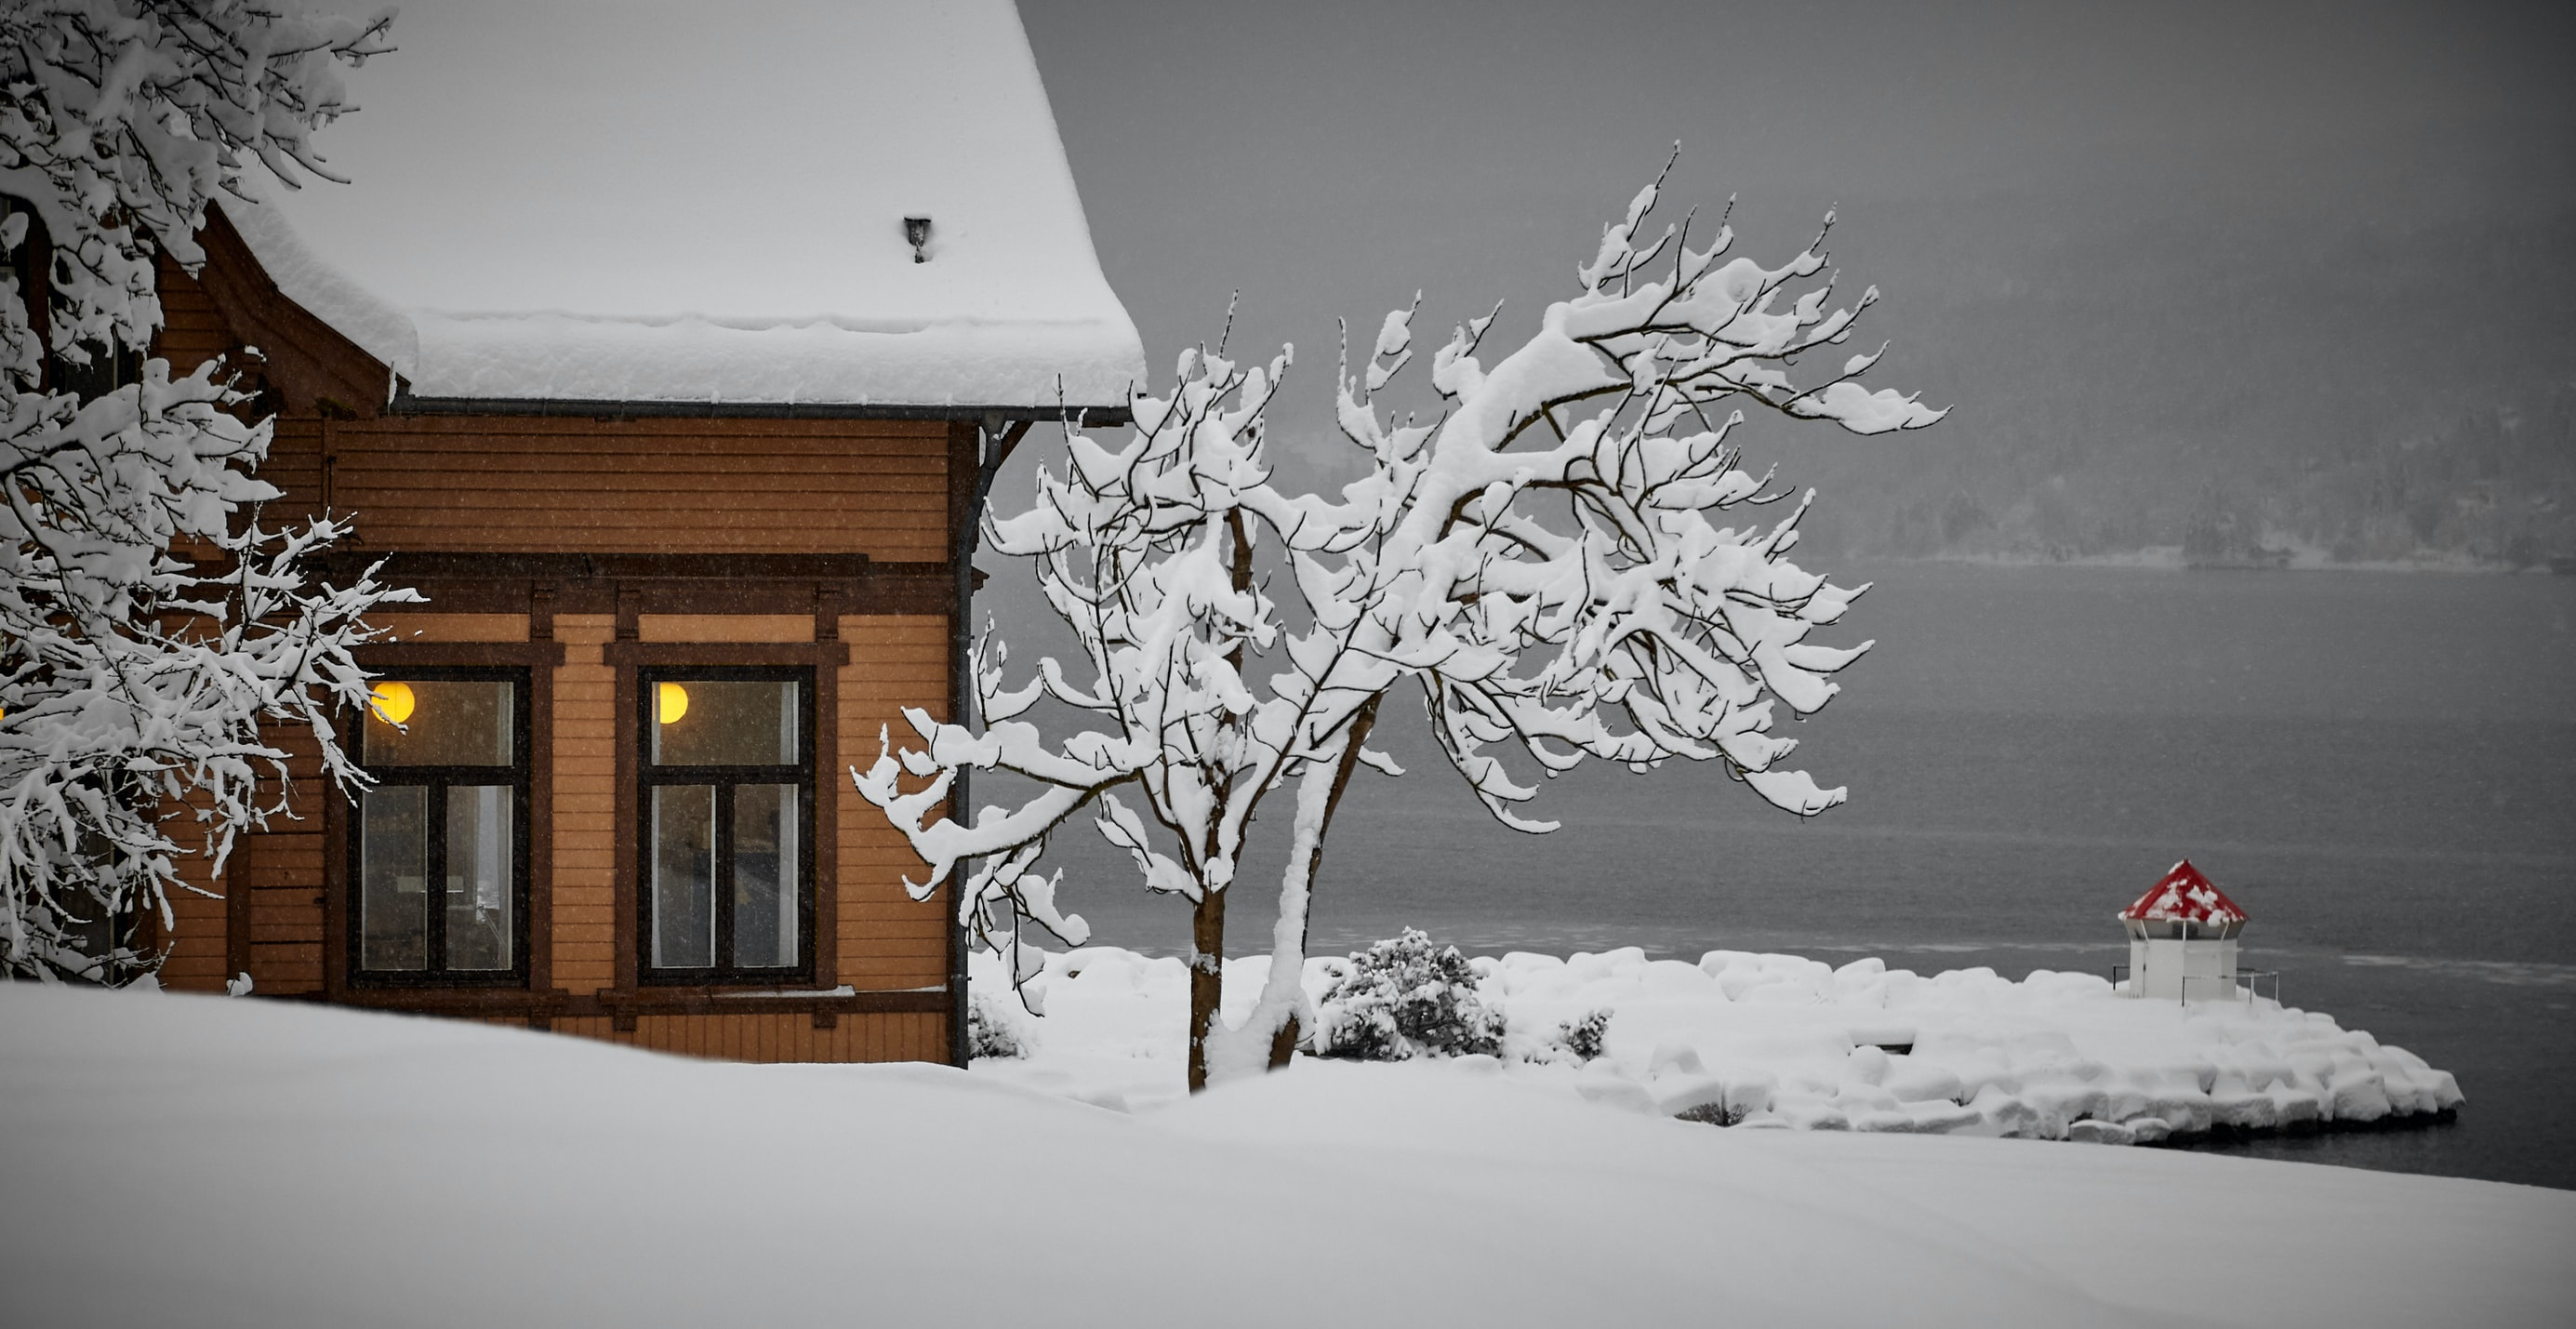 snow covered house on gray lake with lights on in the window